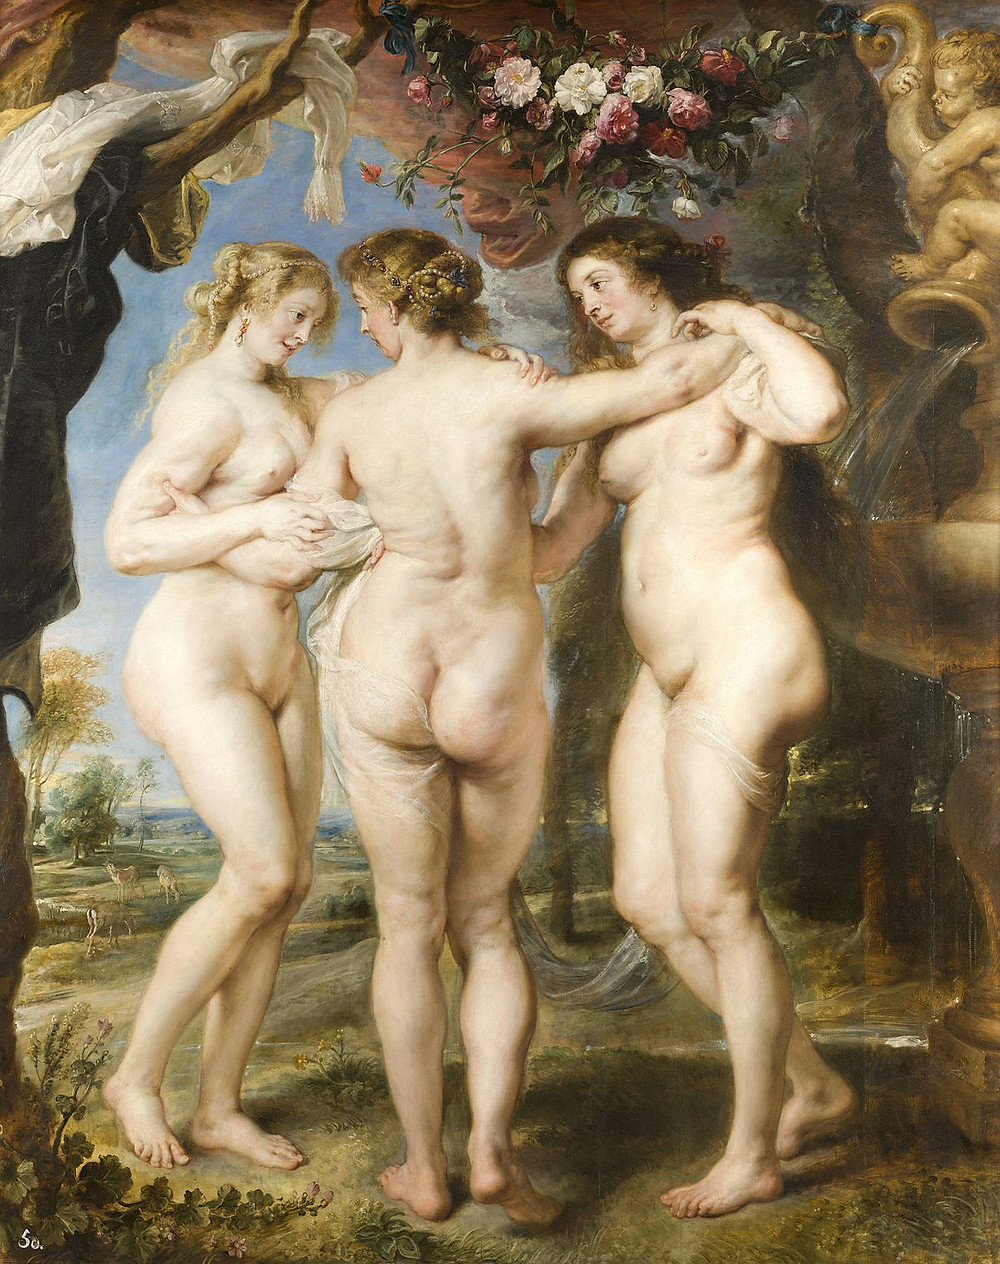 A Rubens painting of three Rubenesque ladies just generally being graceful and Rubenesque